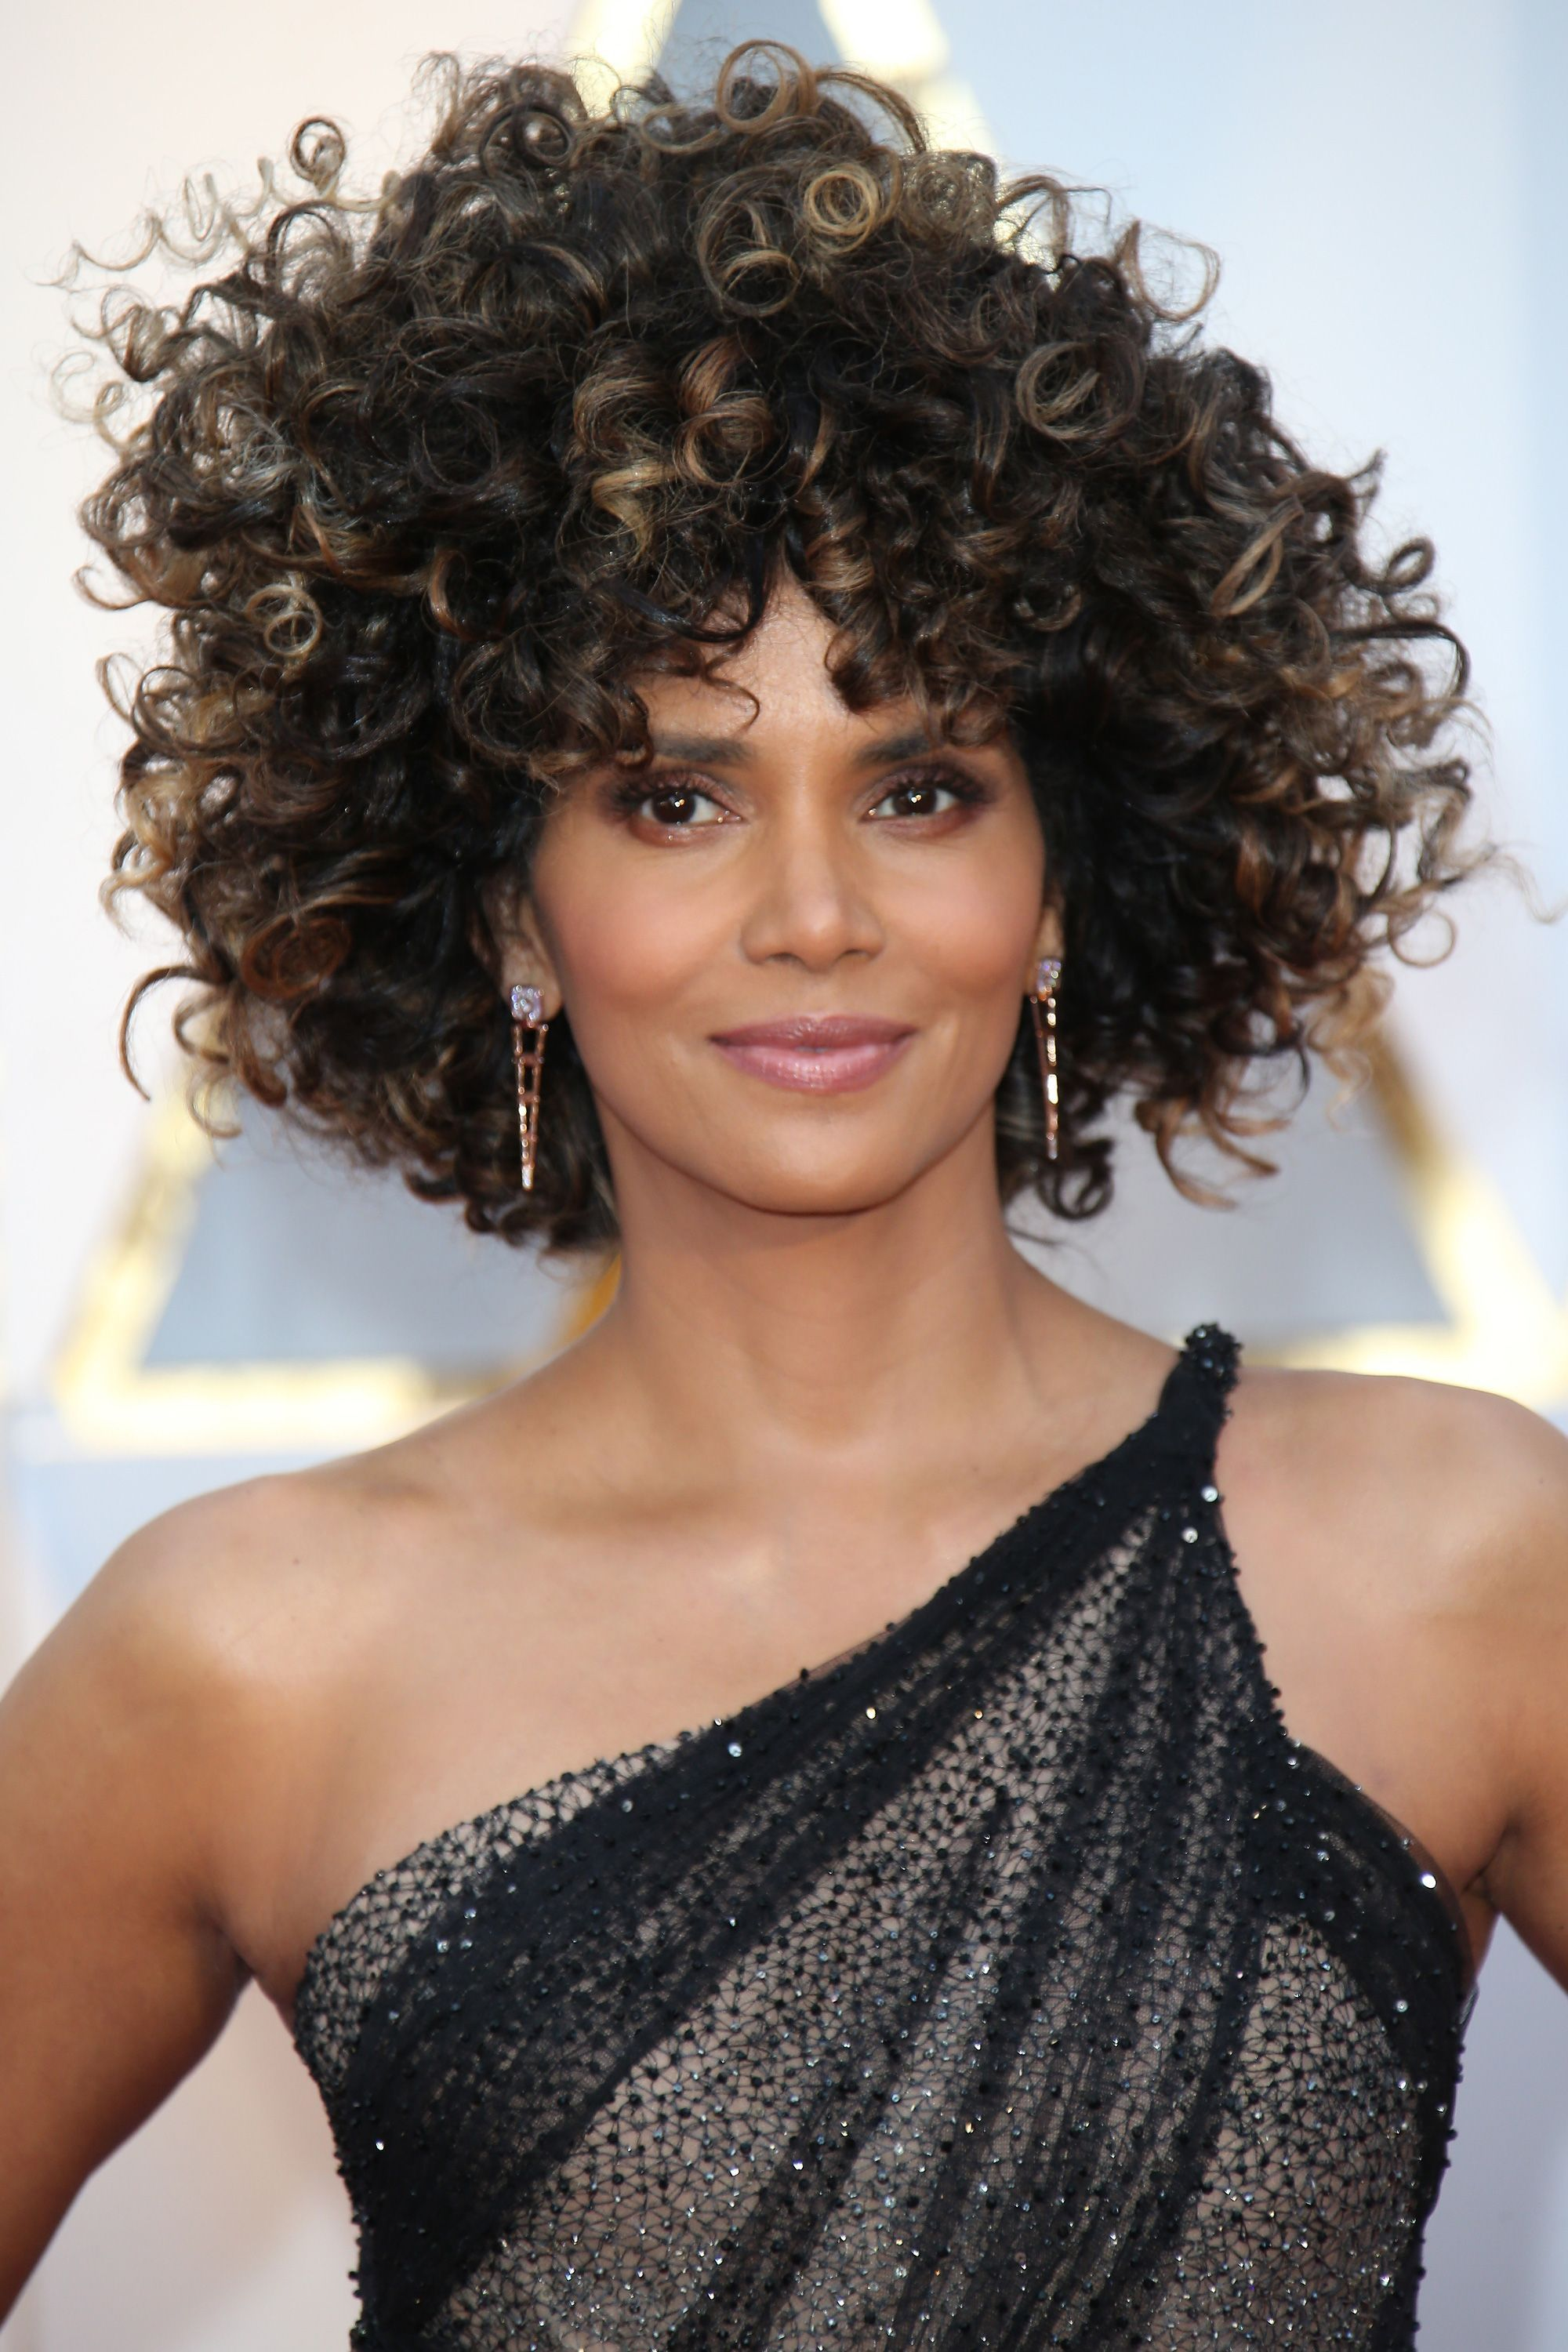 Image result for loose natural curly hairstyles prom